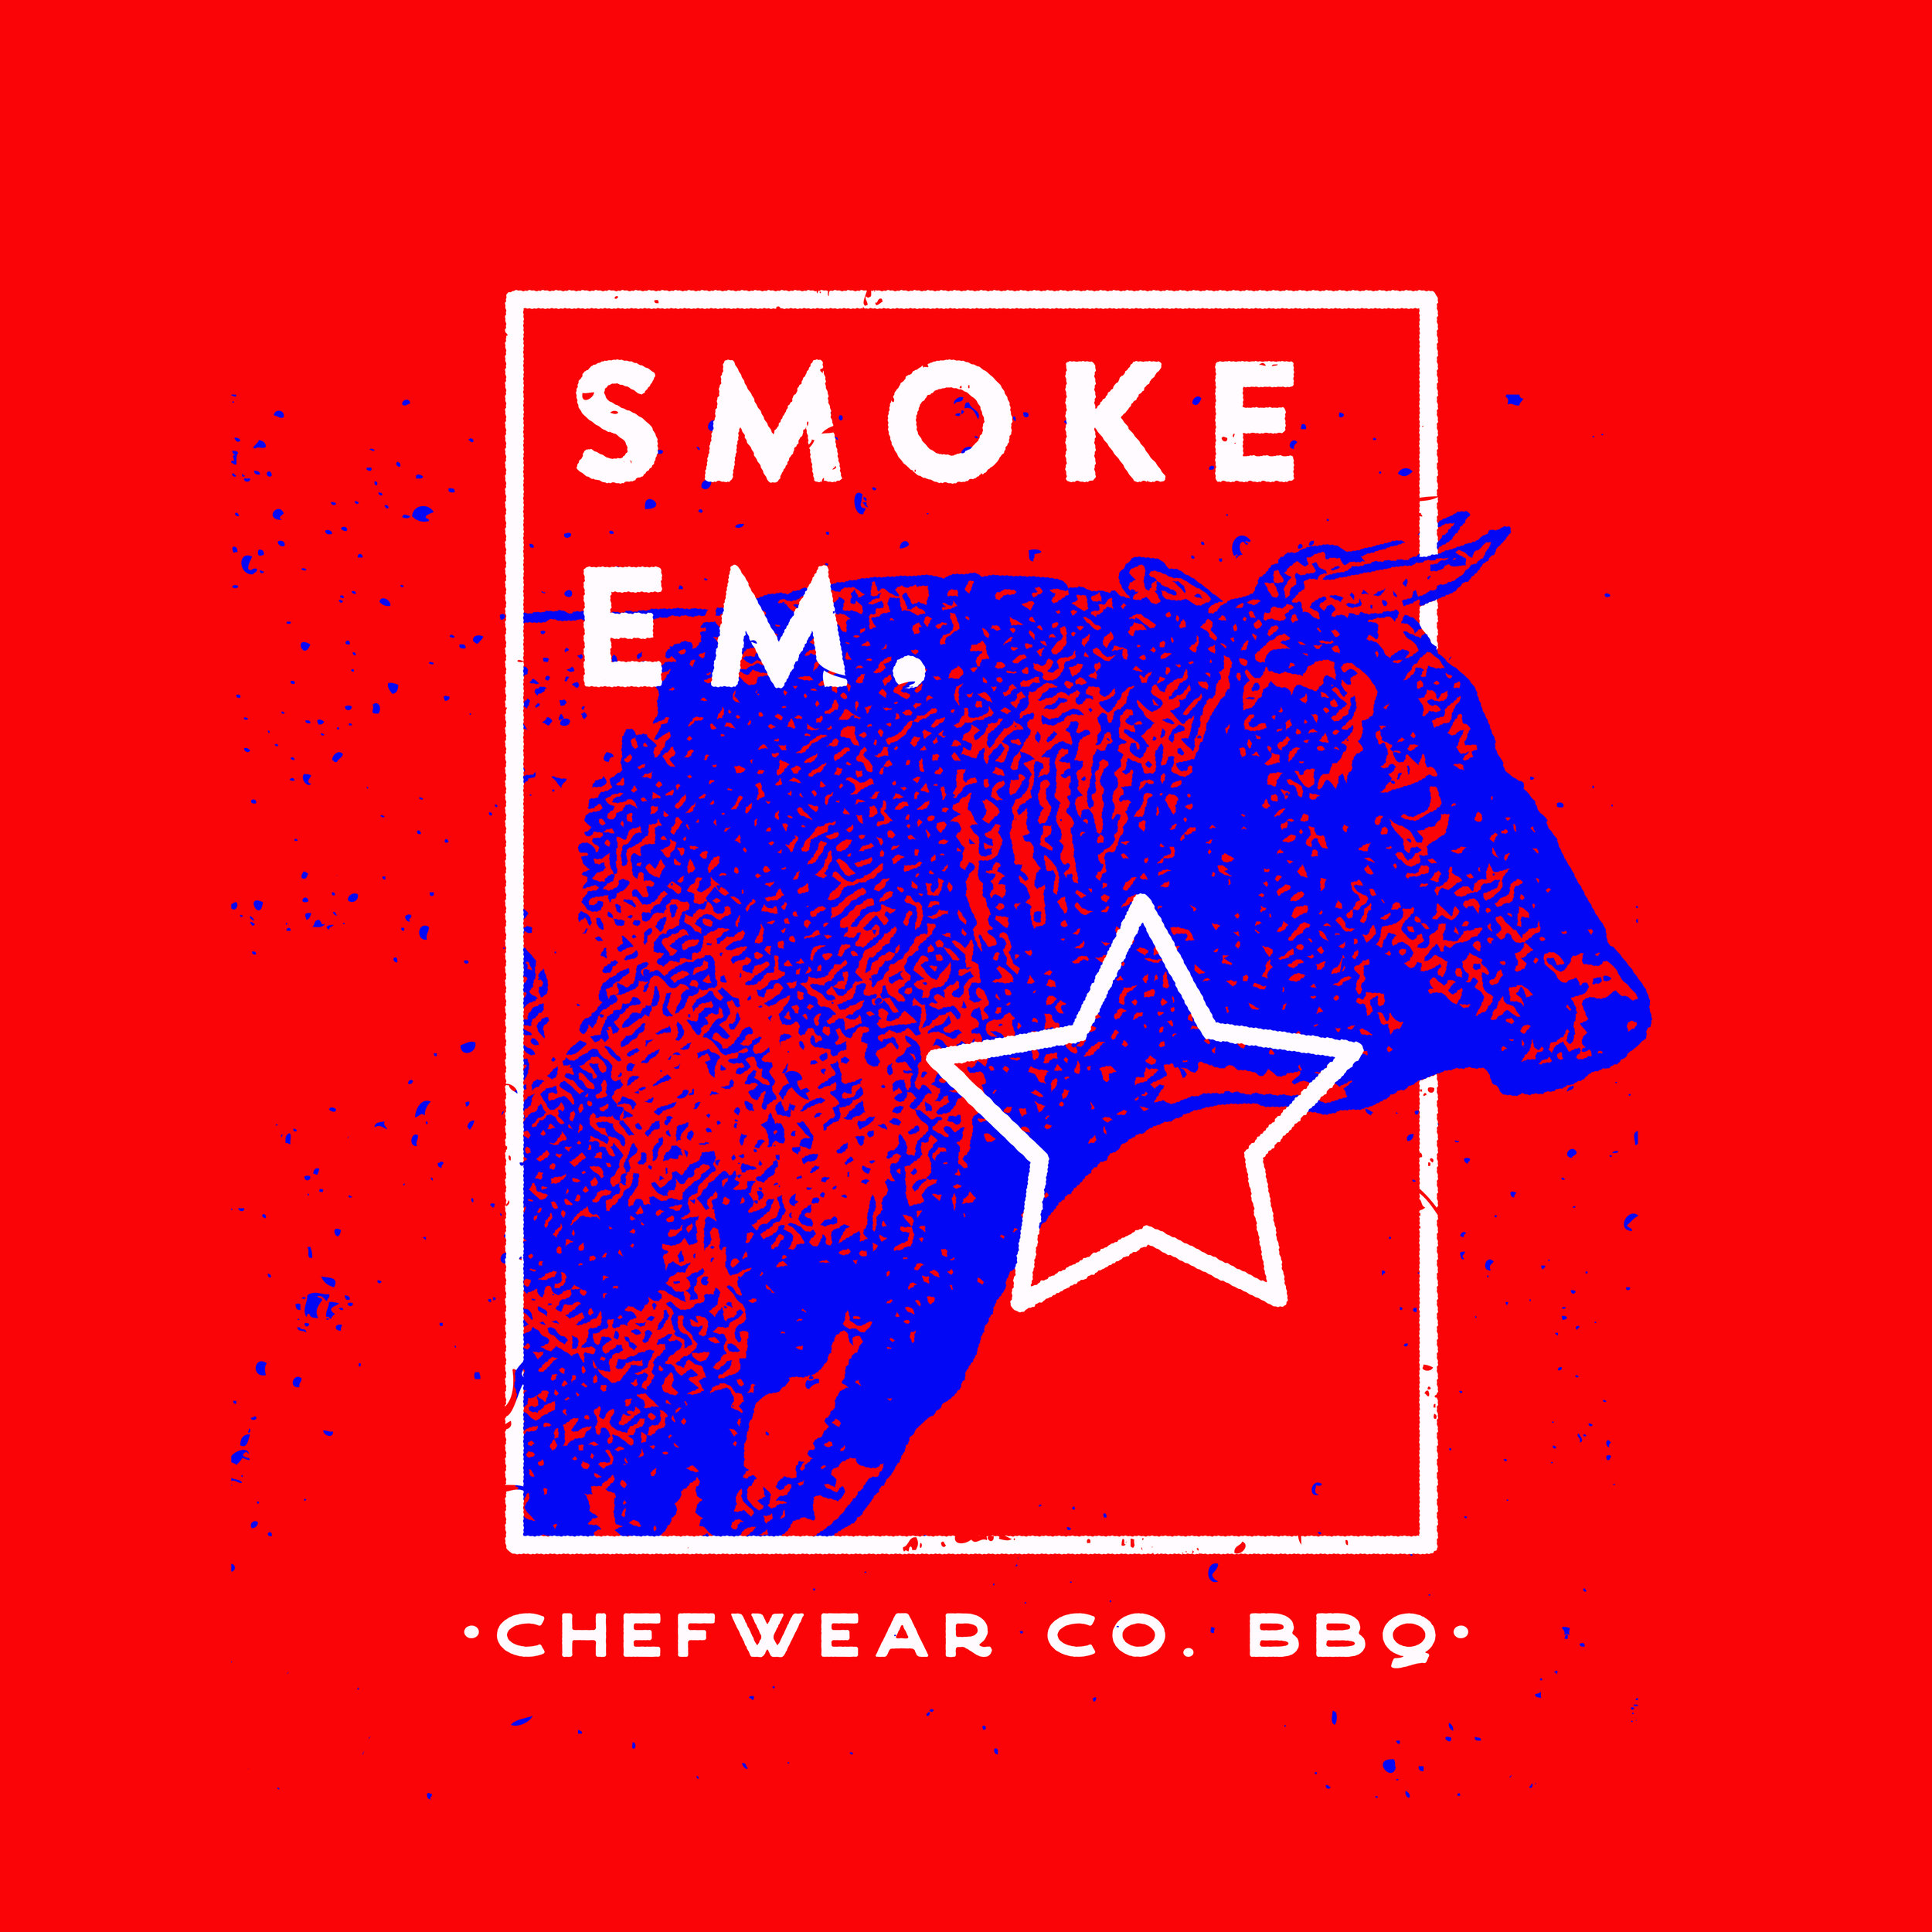 SMOKE EM. - CHEFWEAR expressed that for this collection they would like something edgy  but not distasteful so I decided that the BBQ culture could provide a fun opportunity to create some play on words.